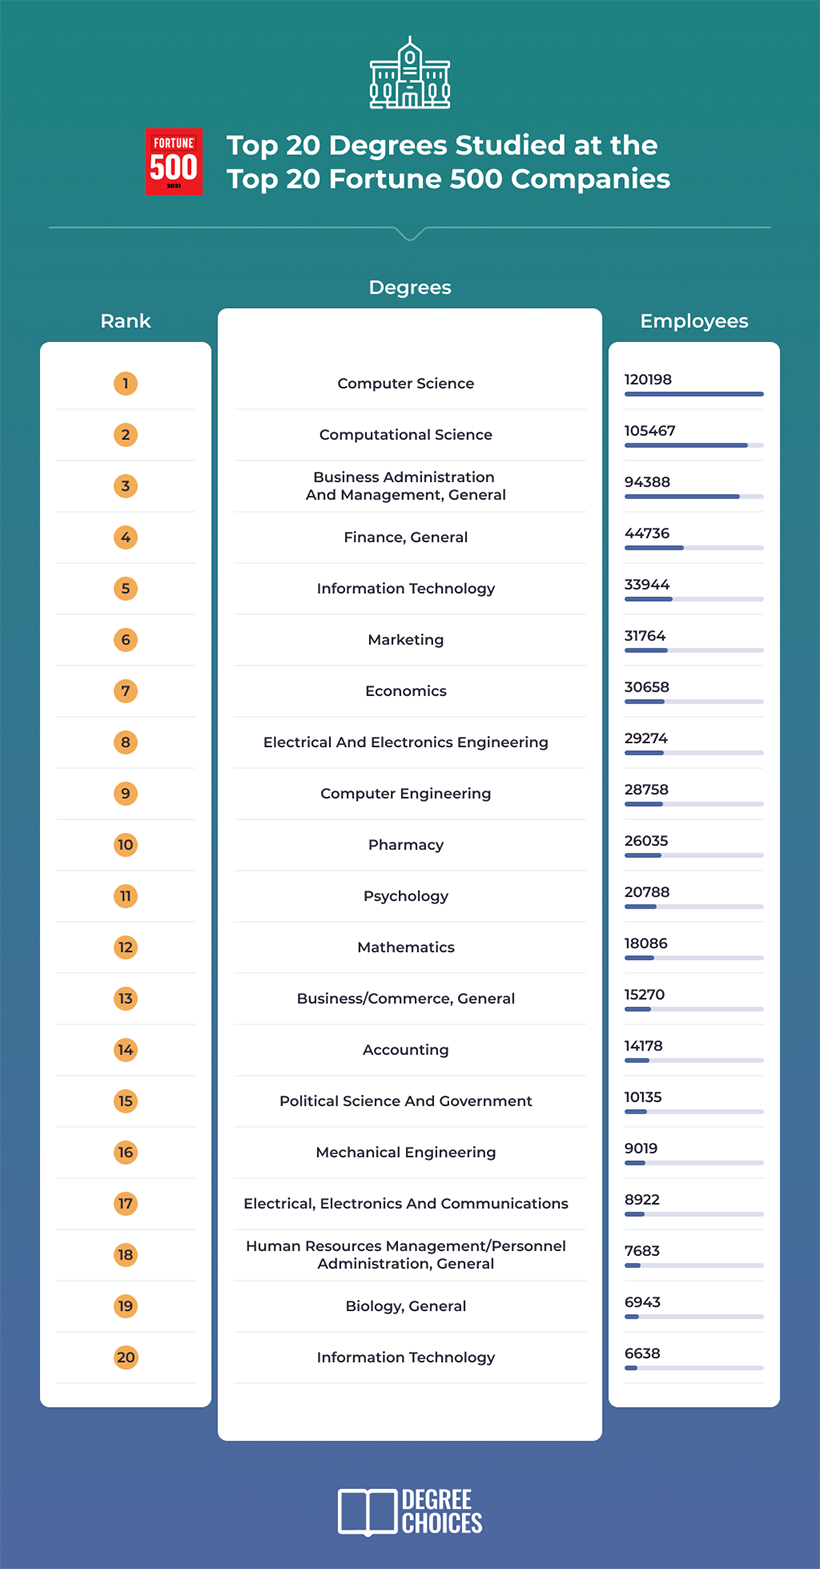 top 20 degrees studied at the top 20 fortune 500 companies